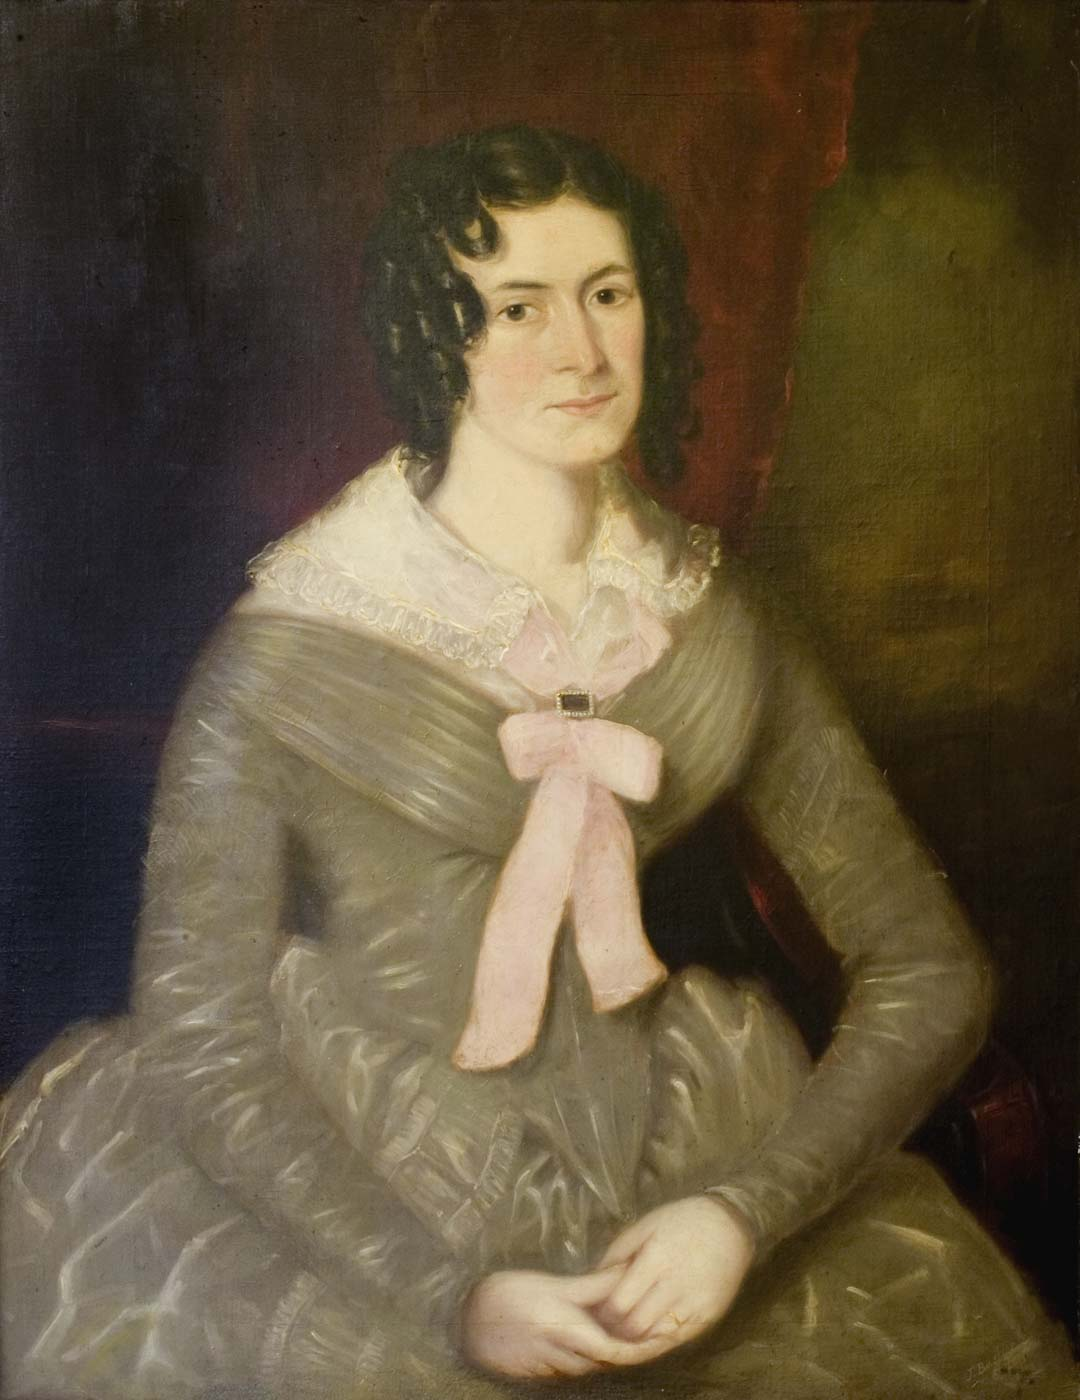 Painting of a woman in an 18th century robe. - click to view larger image